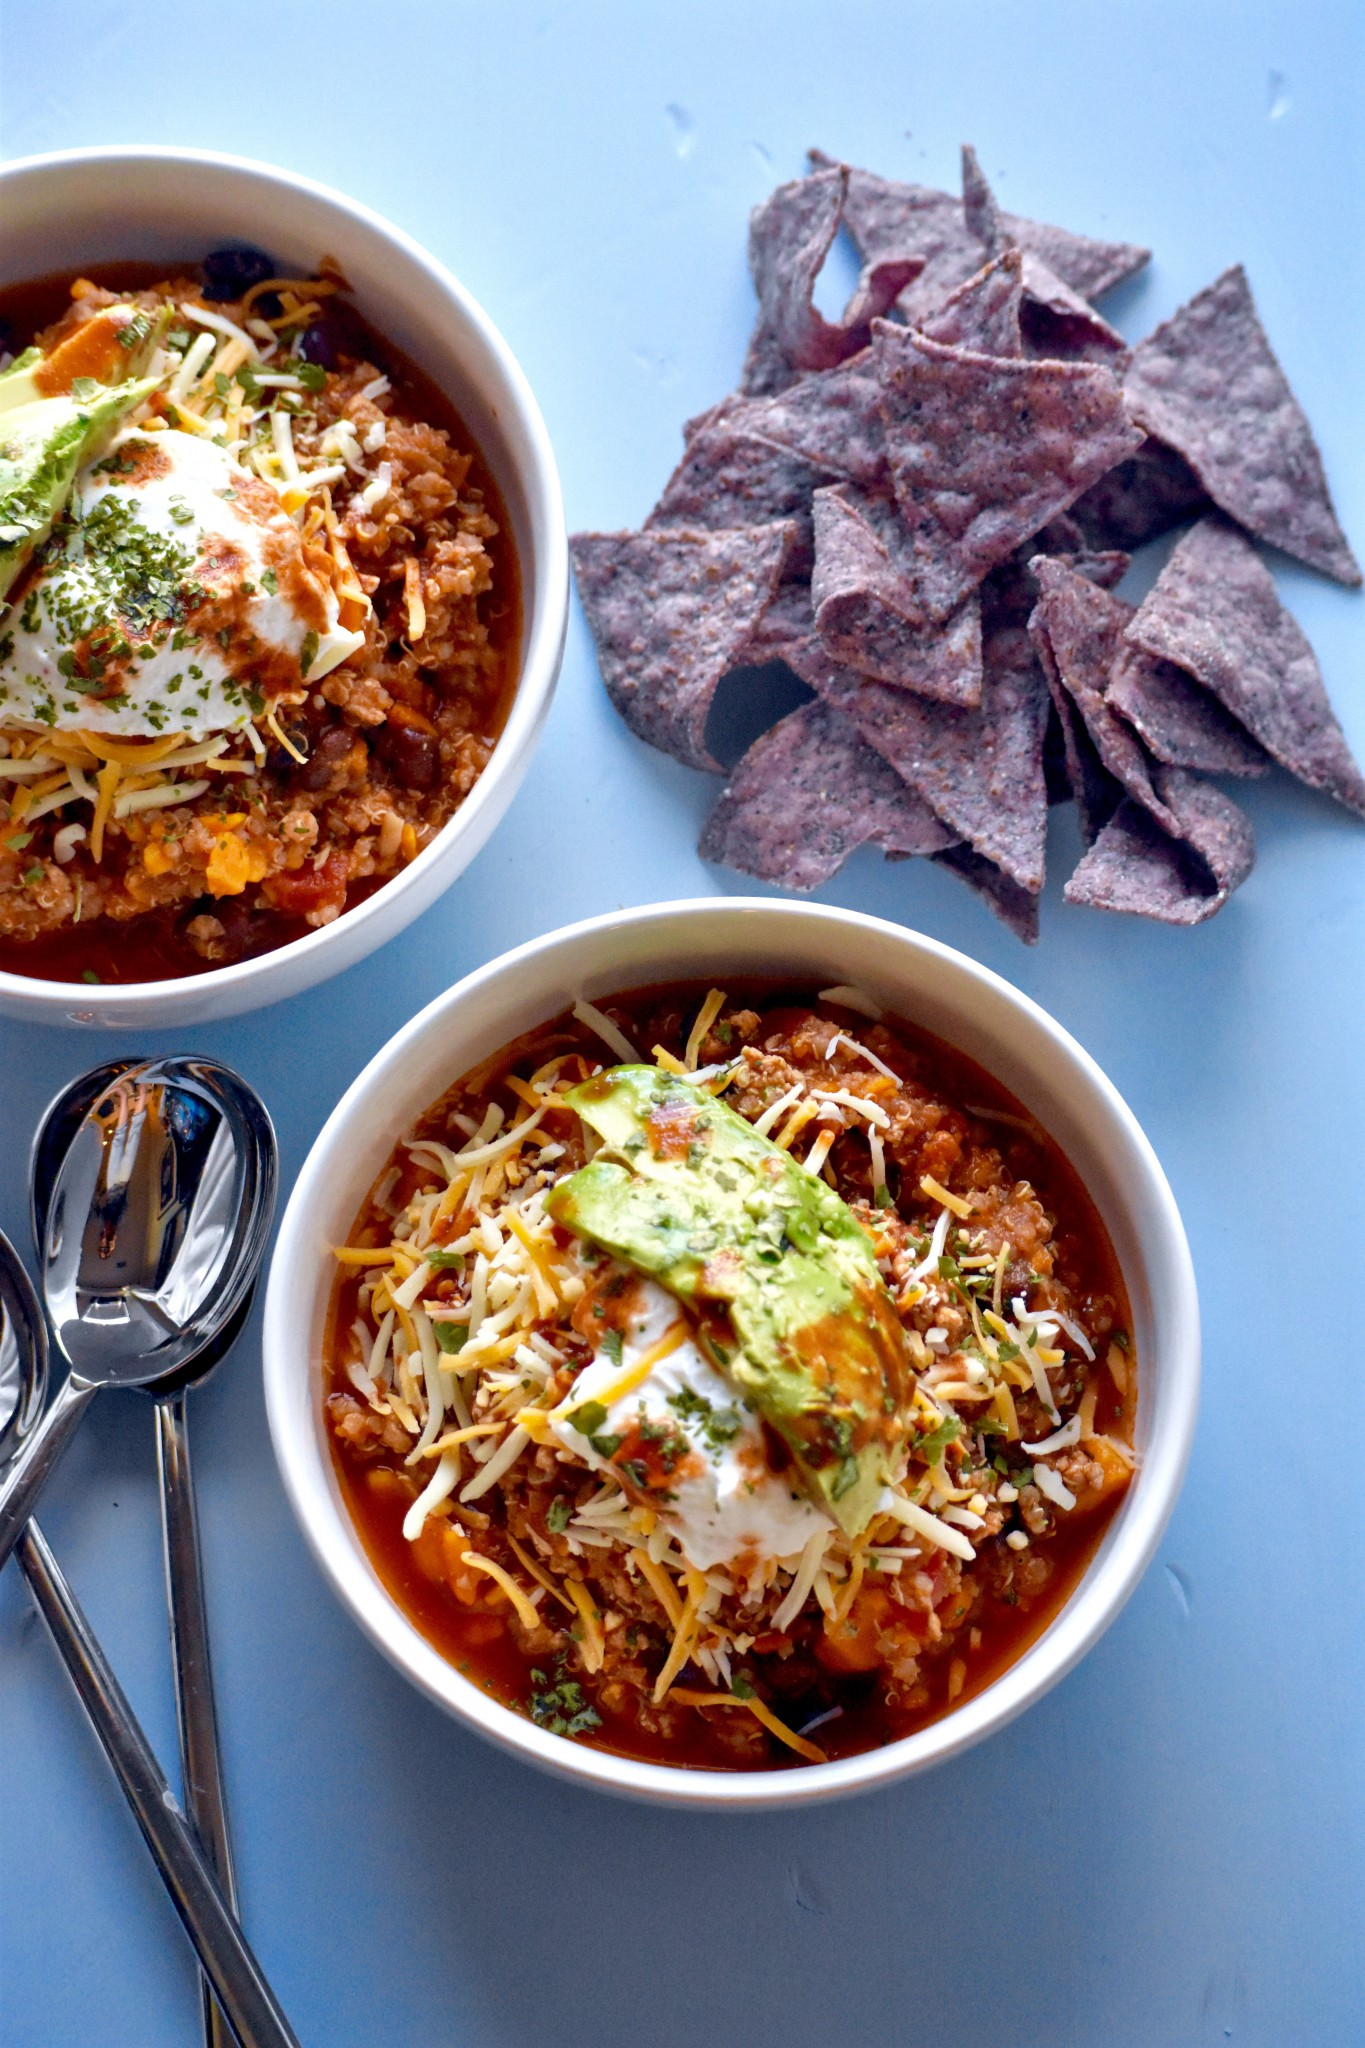 hearty black bean, sweet potato, quinoa and turkey chili - the perfect comforting dish for these chilly days! // cait's plate